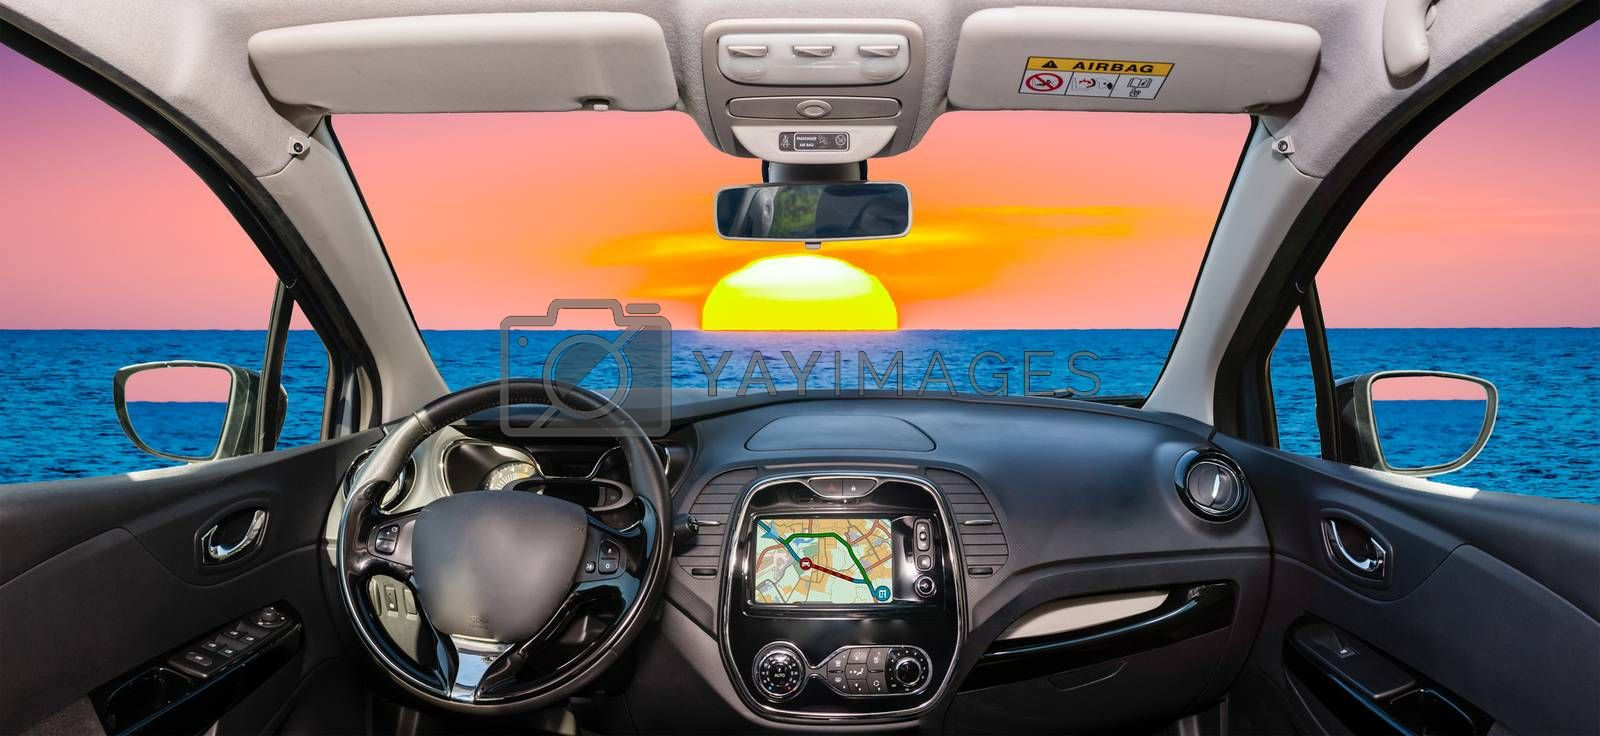 Looking through a car windshield with view of a beautiful sunset by the mediterranean sea, Italy